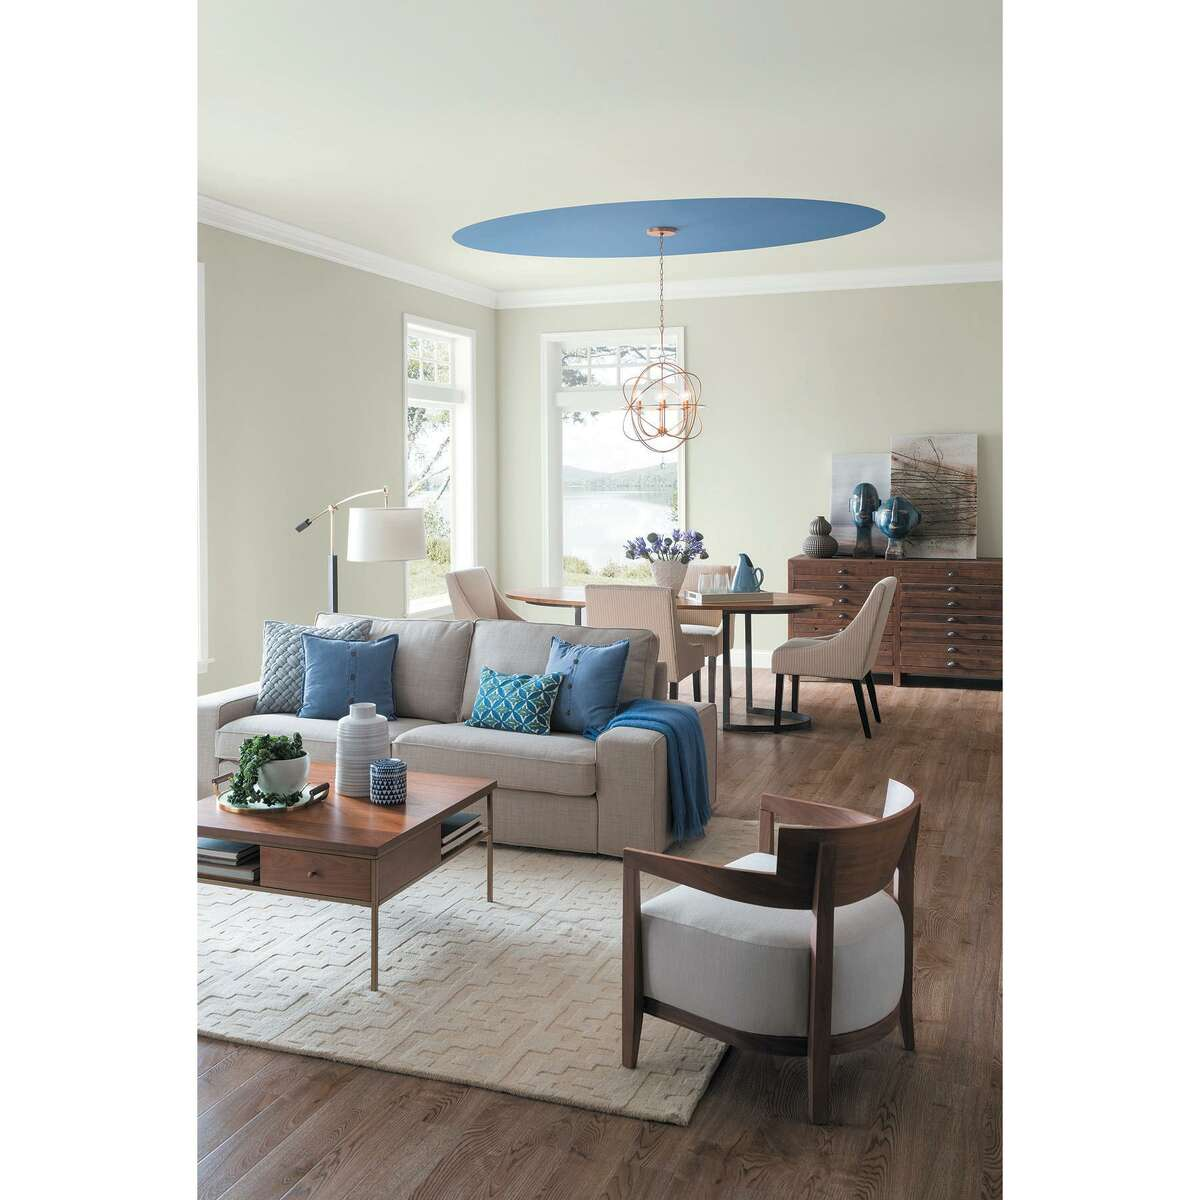 """2. White walls. """"Pure White"""" is Sherwin-Williams top paint color in the U.S. and in Texas. Just a few years ago, gray paint dominated the residential scene. Now, white paints dominate and are some of the top-selling colors for both Sherwin-Williams and Benjamin Moore."""